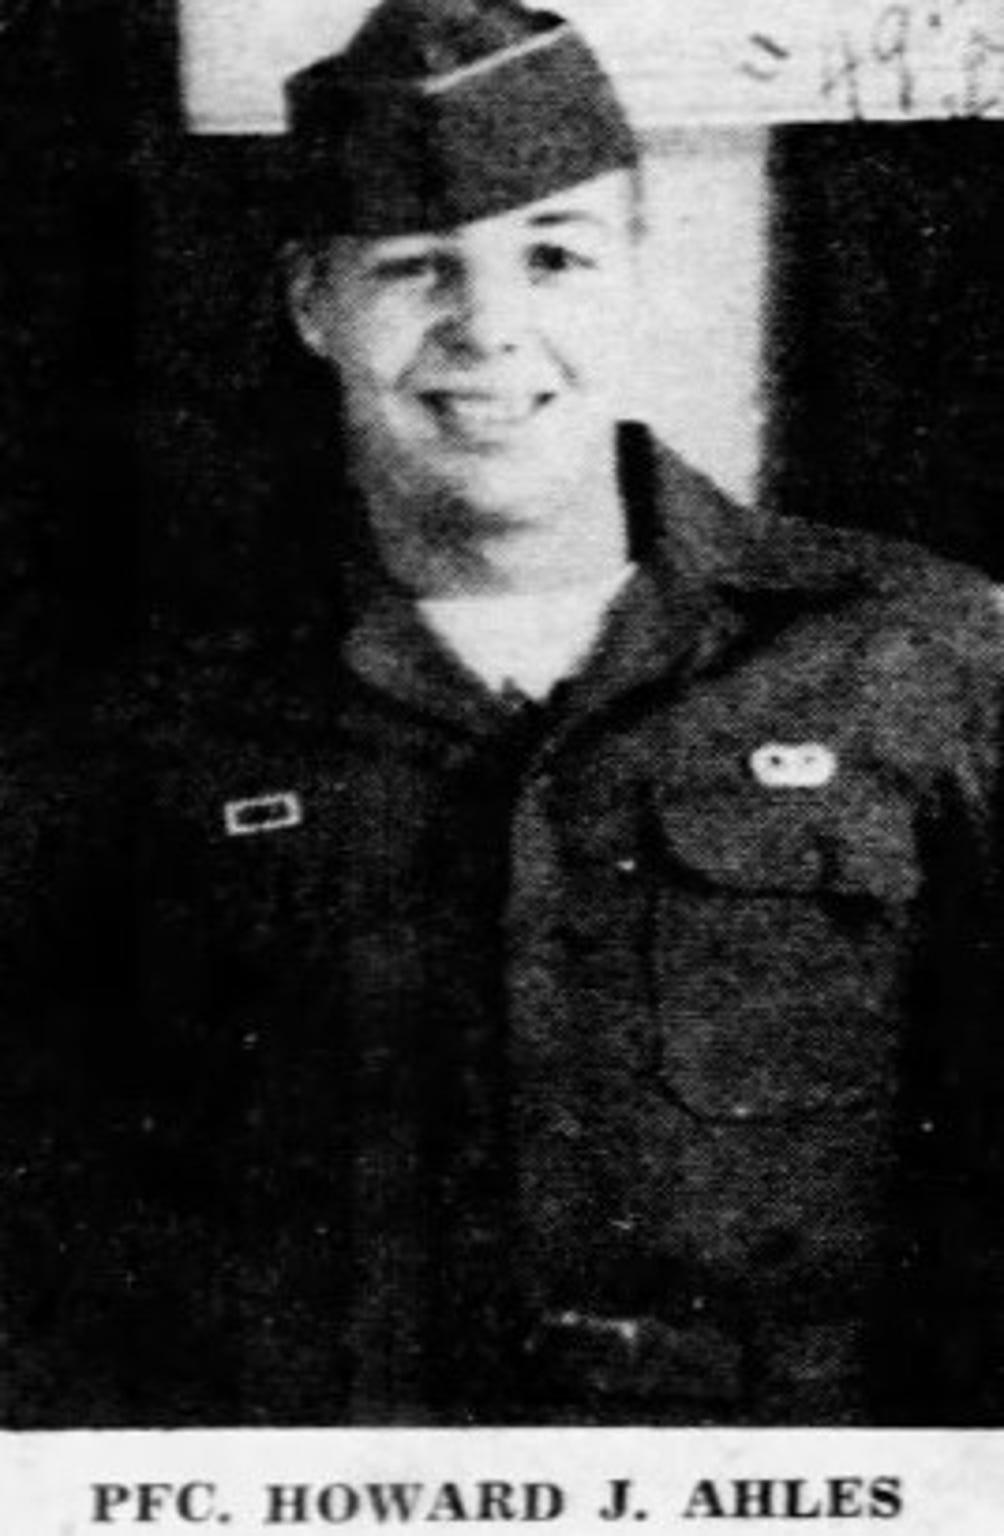 Howard J. Ahles, of St. Clair, died while serving in the Korean War.